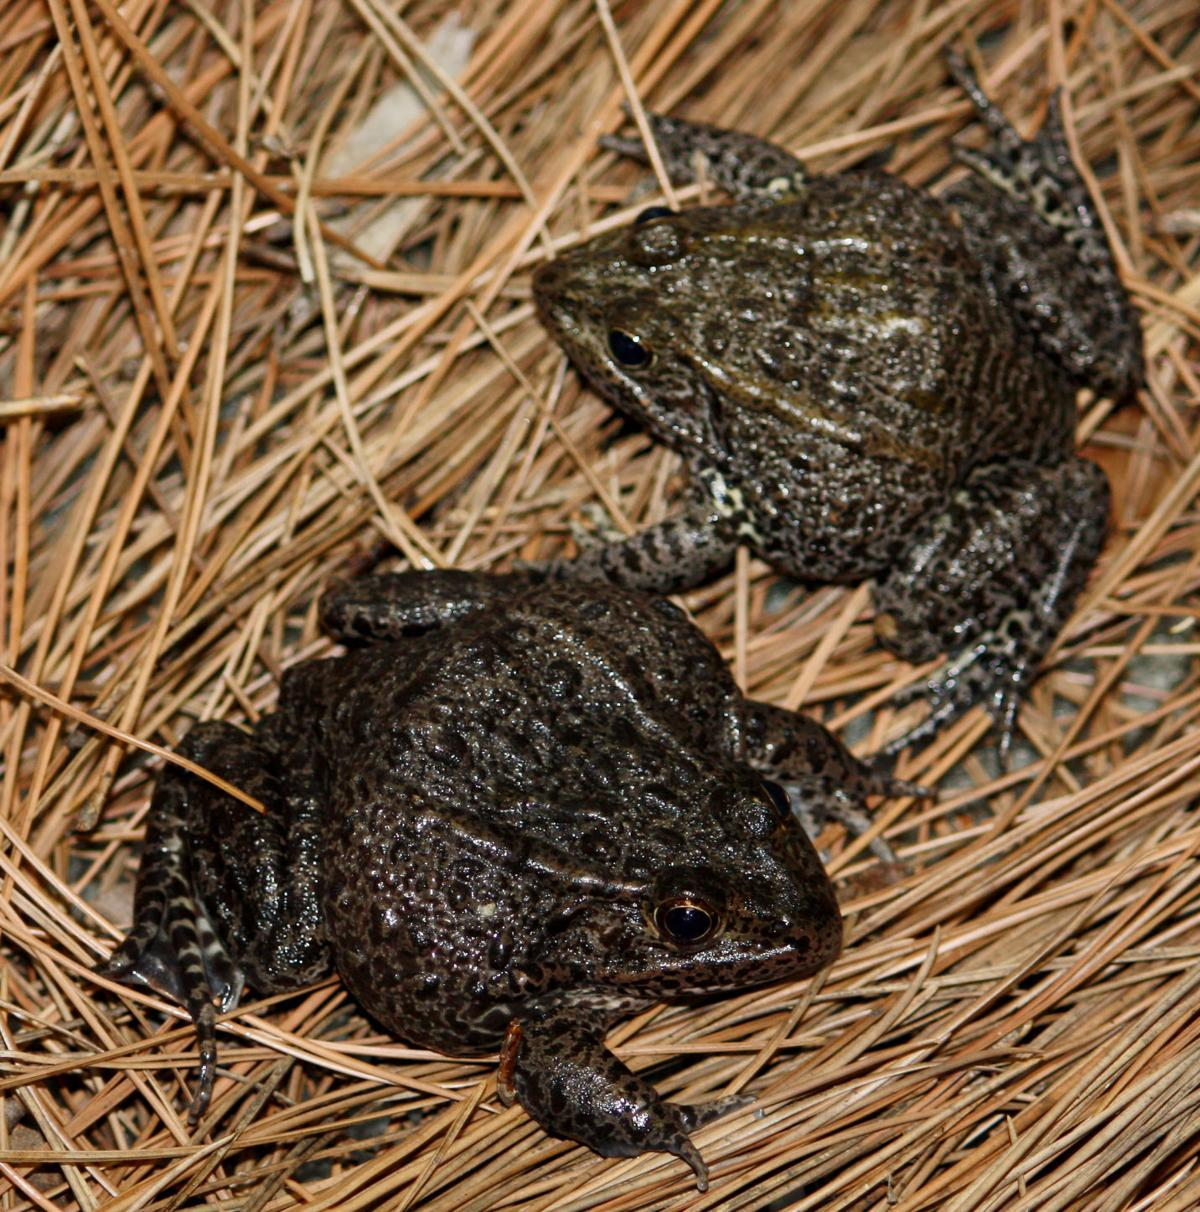 NO.gopherfrog.090417.JPG